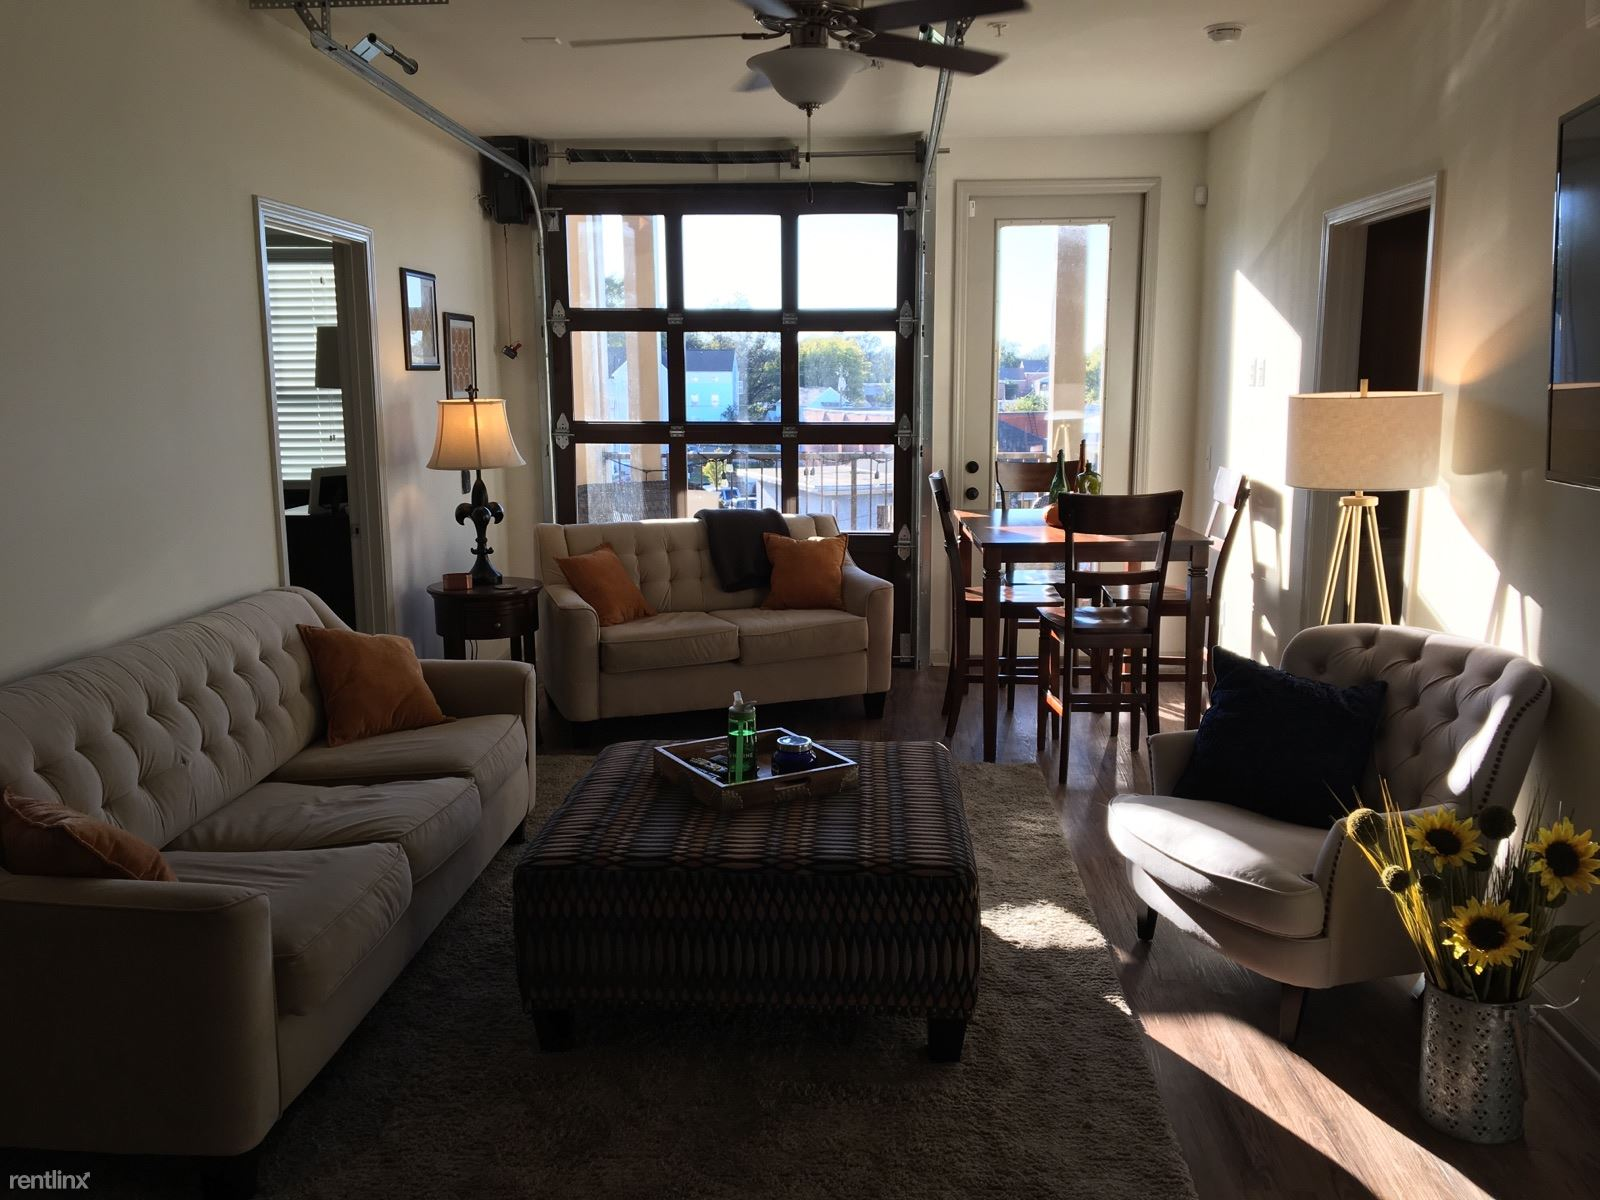 210 S Montgomery St, Starkville, MS 39759 for Rent | Condo ...